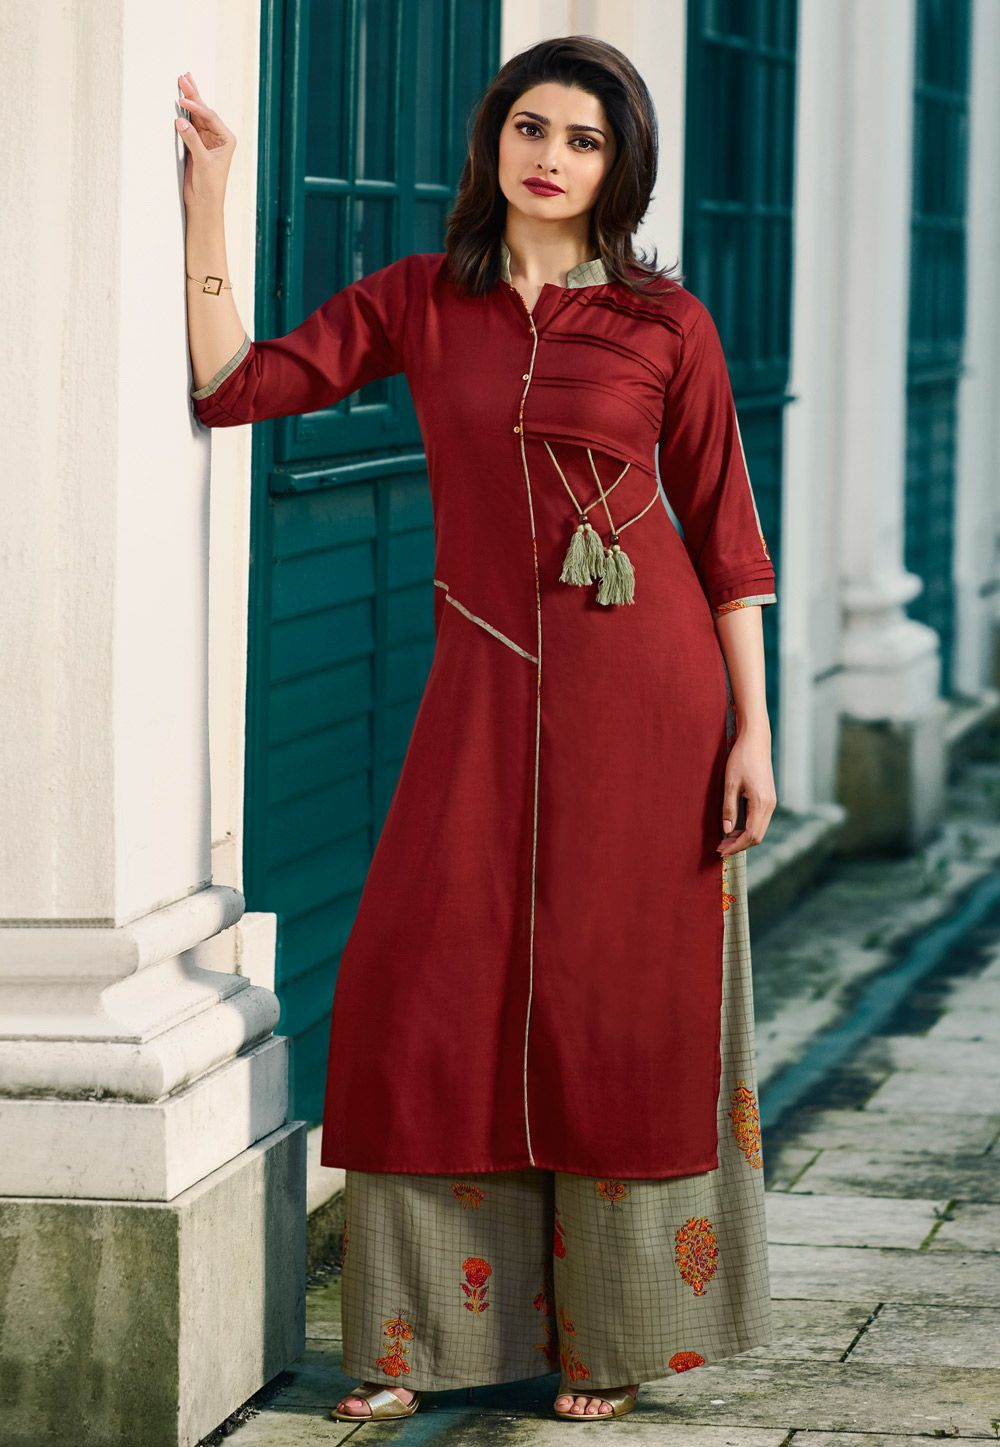 85c865728e Buy Prachi Desai Maroon Rayon Readymade Pakistani Style Suit 161027 online  at lowest price from huge collection of salwar kameez at  Indianclothstore.com.